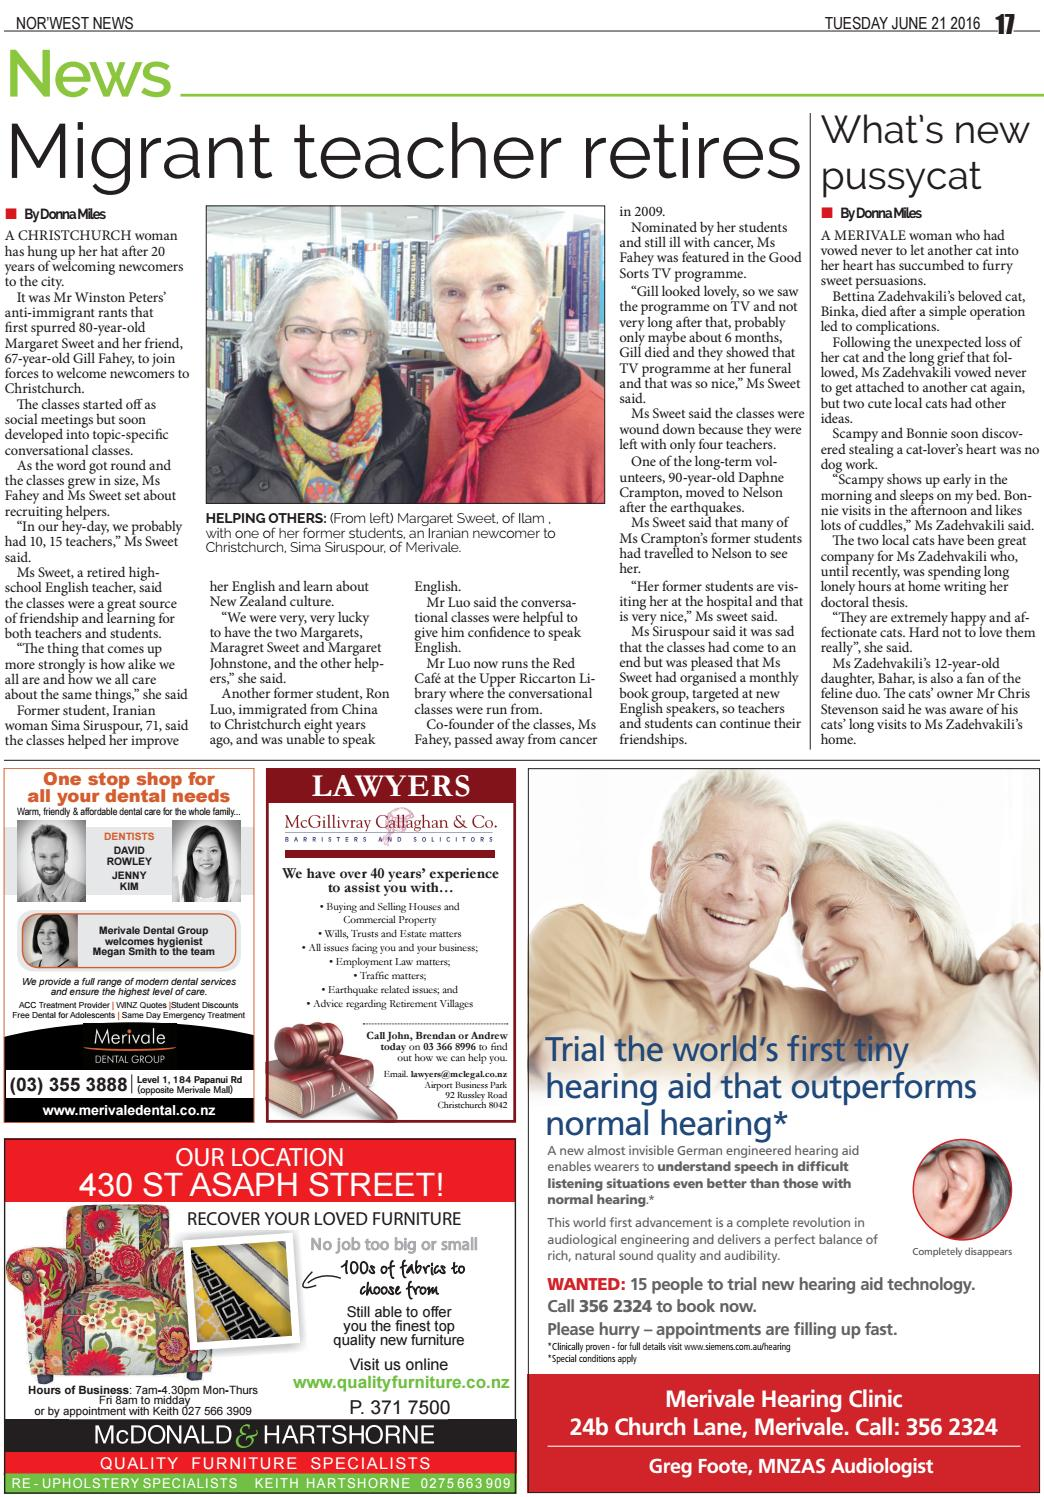 NorWest News 21-06-16 by Local Newspapers - issuu